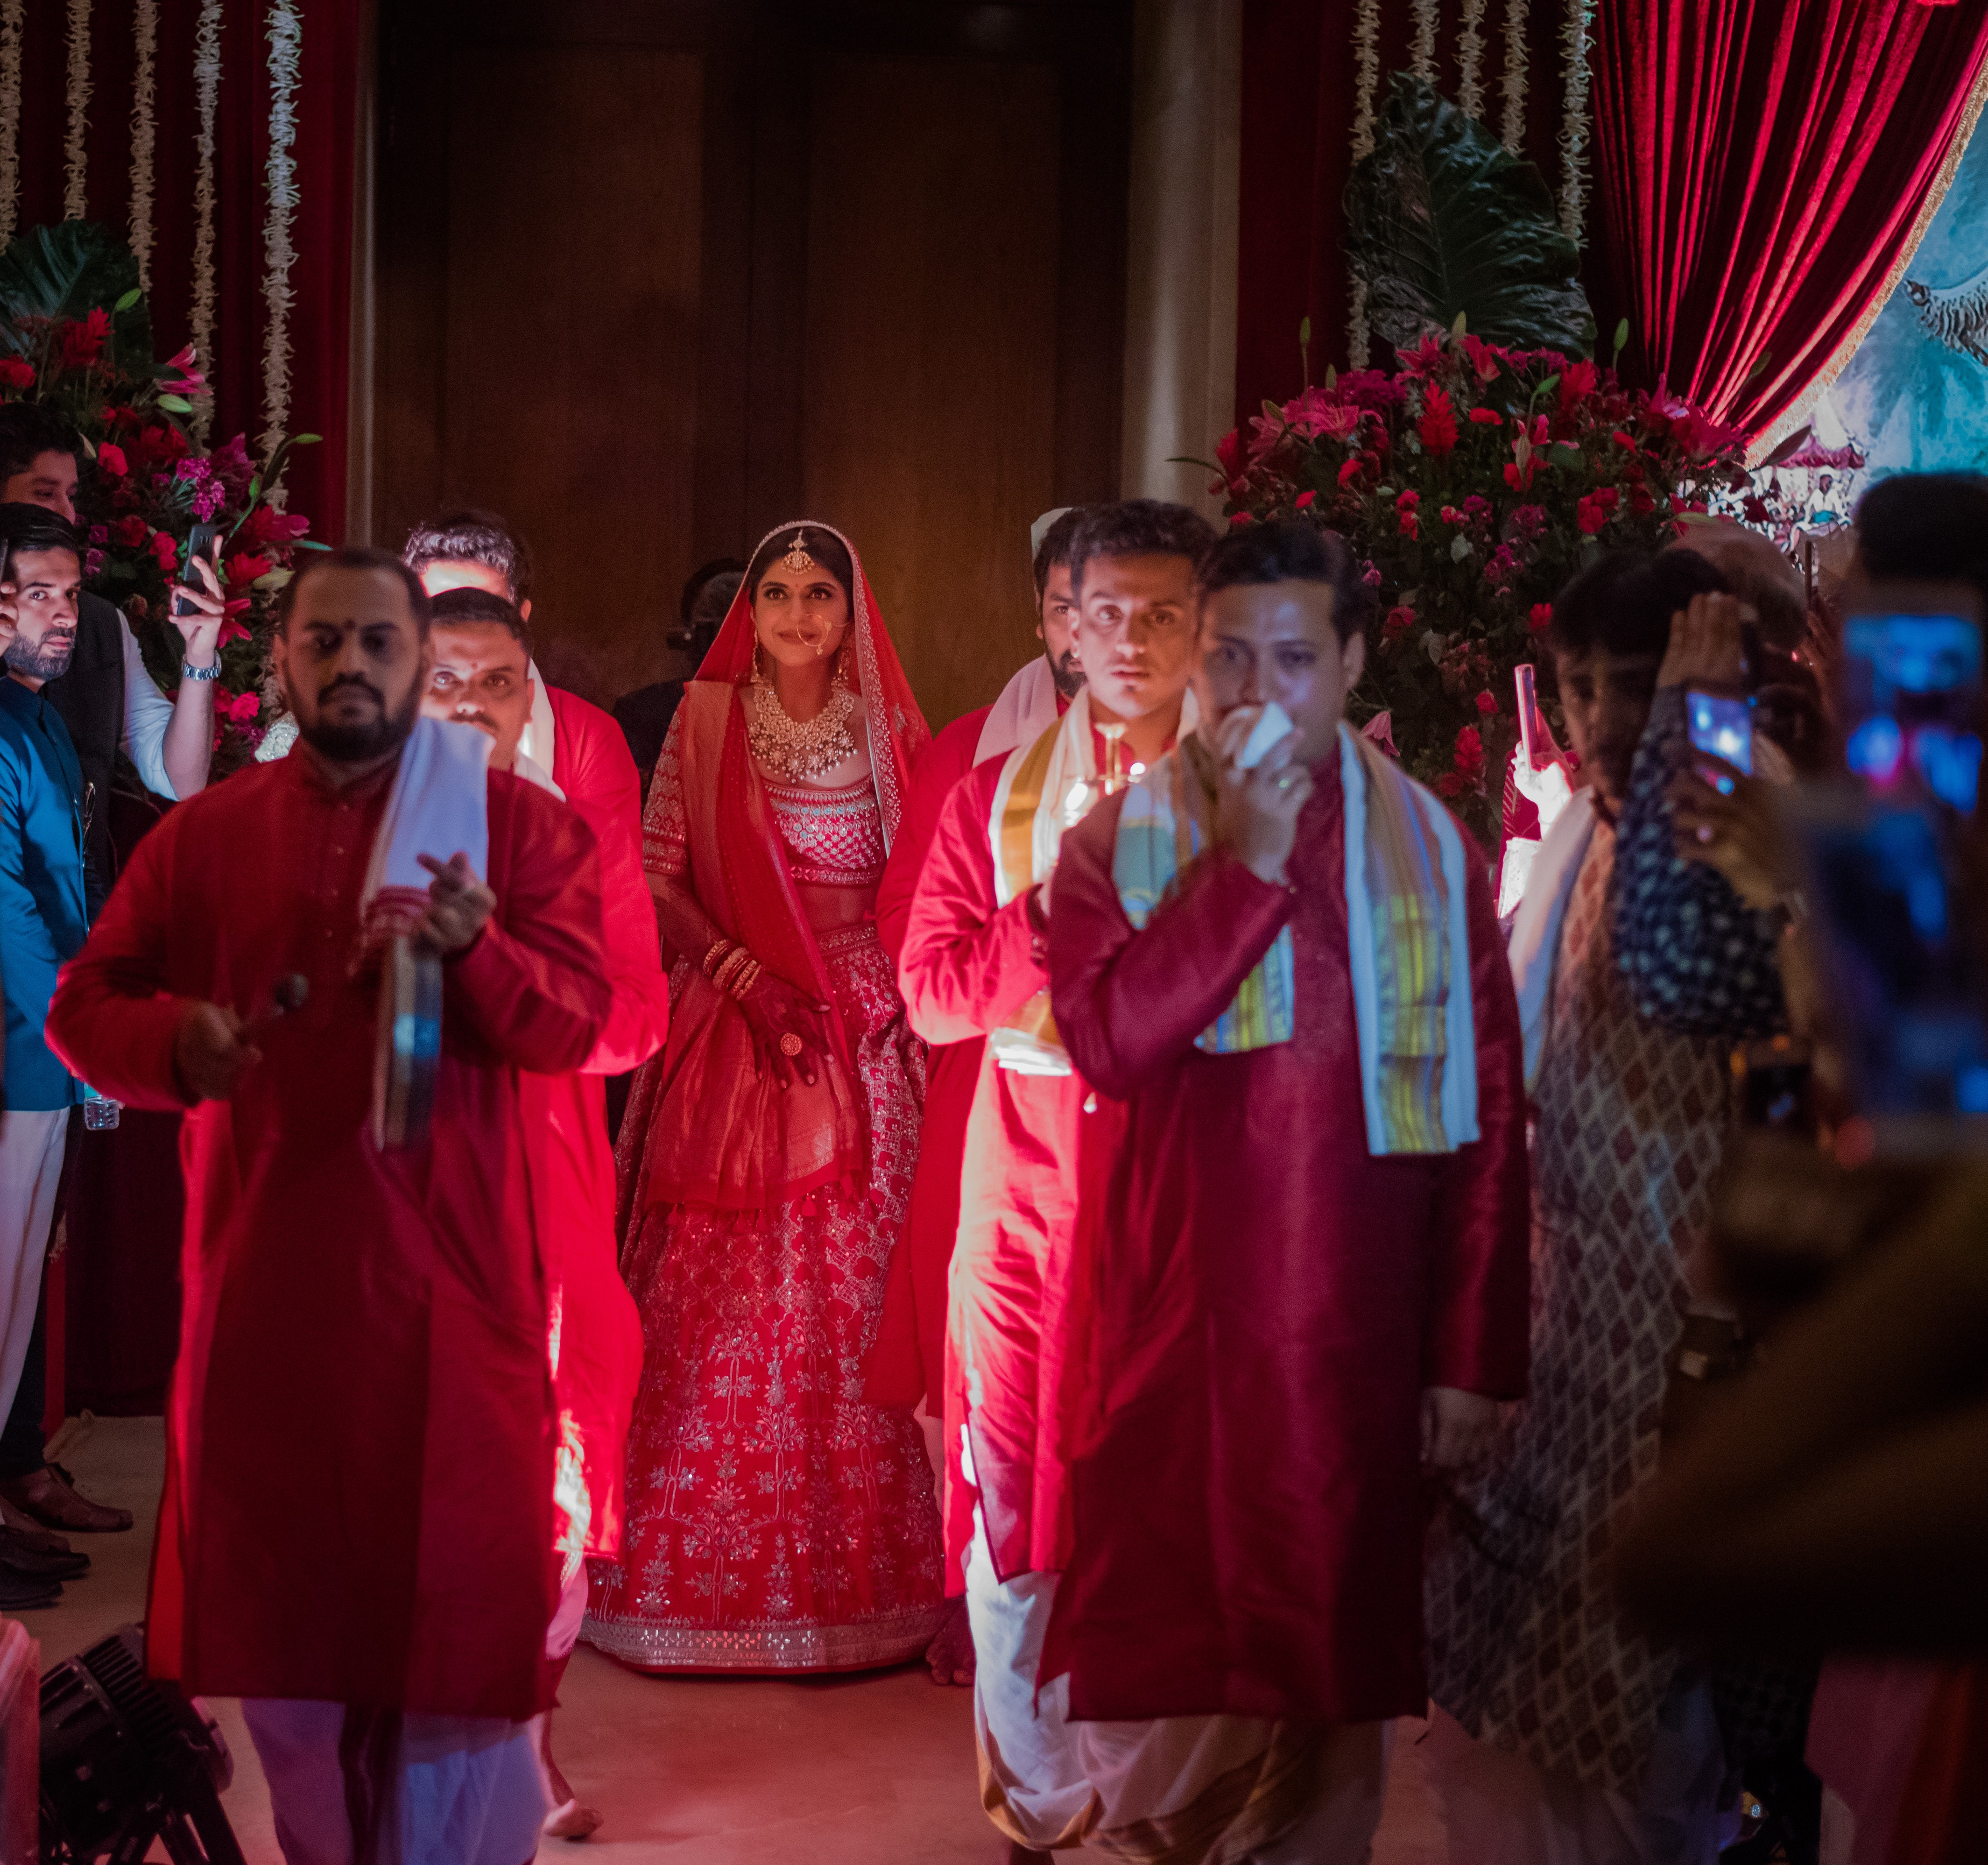 wedding bride entrance with pandits chanting - traditional idea